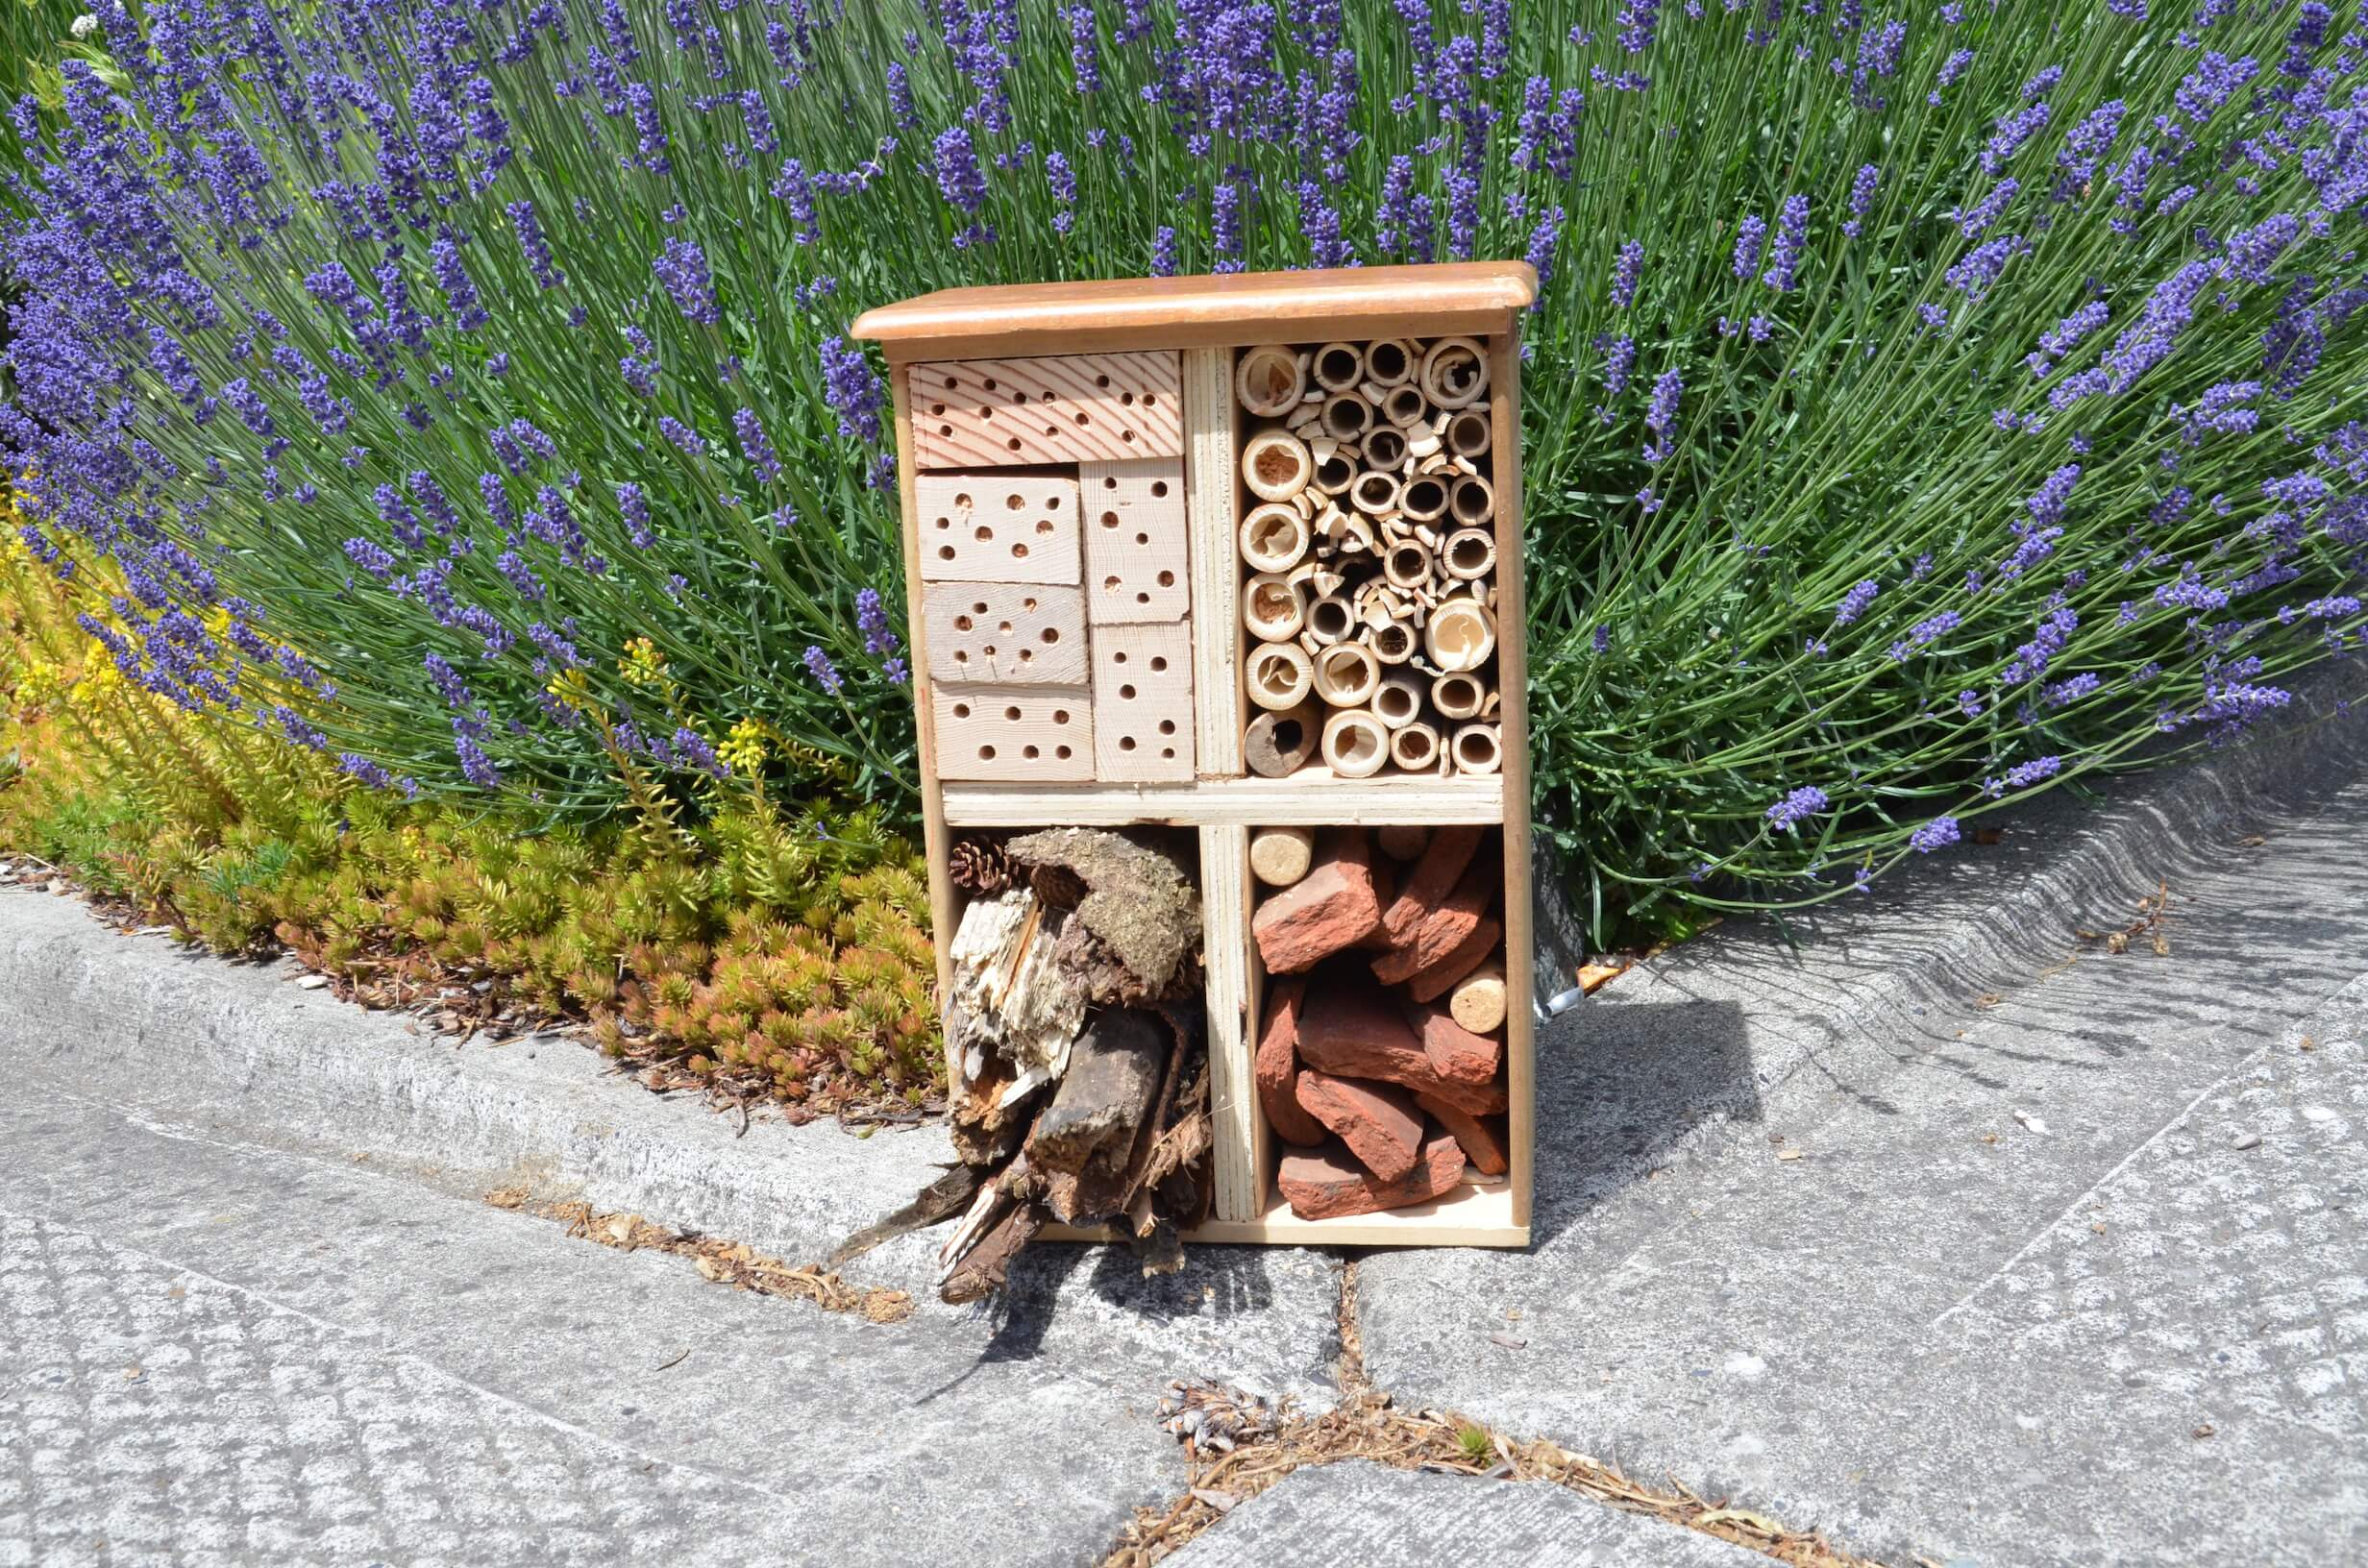 DIY Insect Hotel using Scrap materials